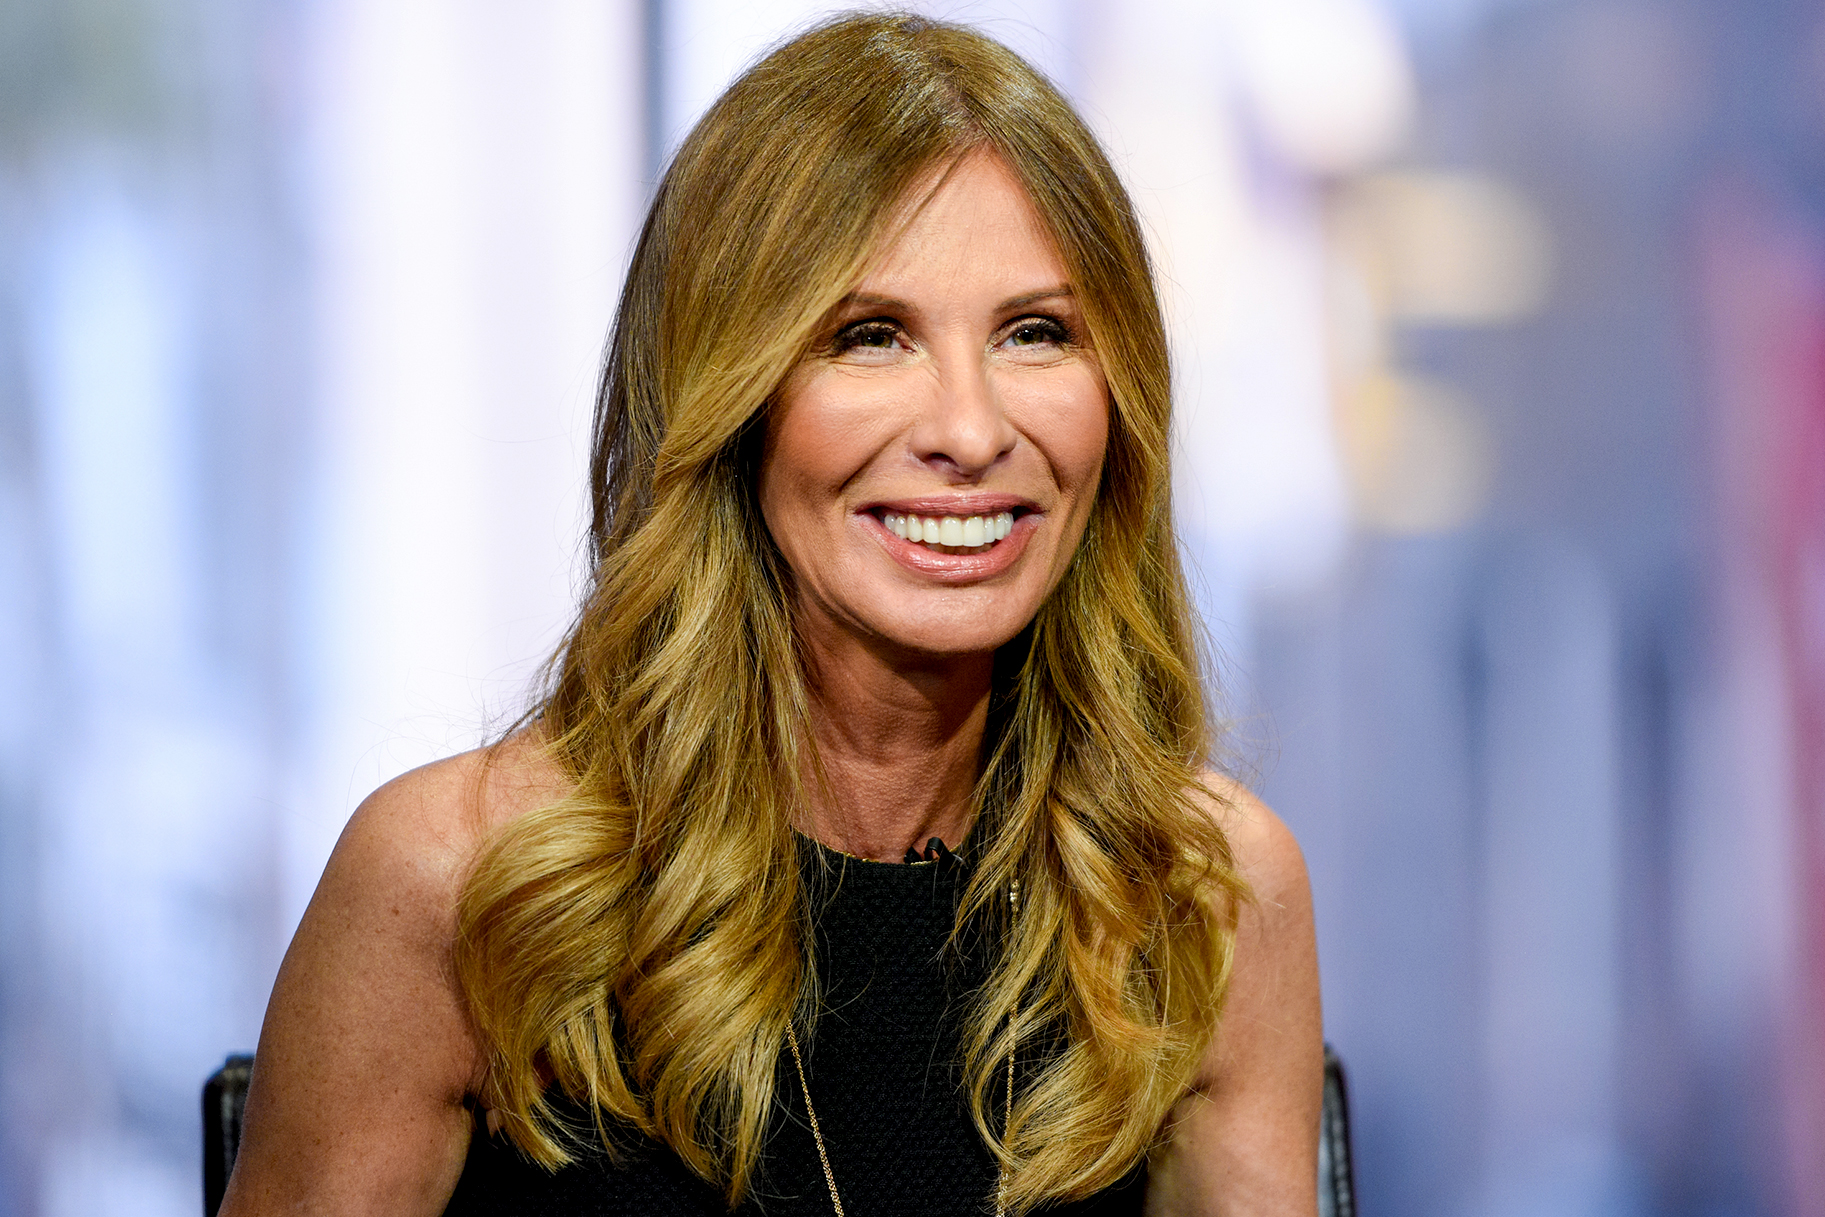 Carole Radziwill Once Wanted to Date Liam Neeson After a Kiss